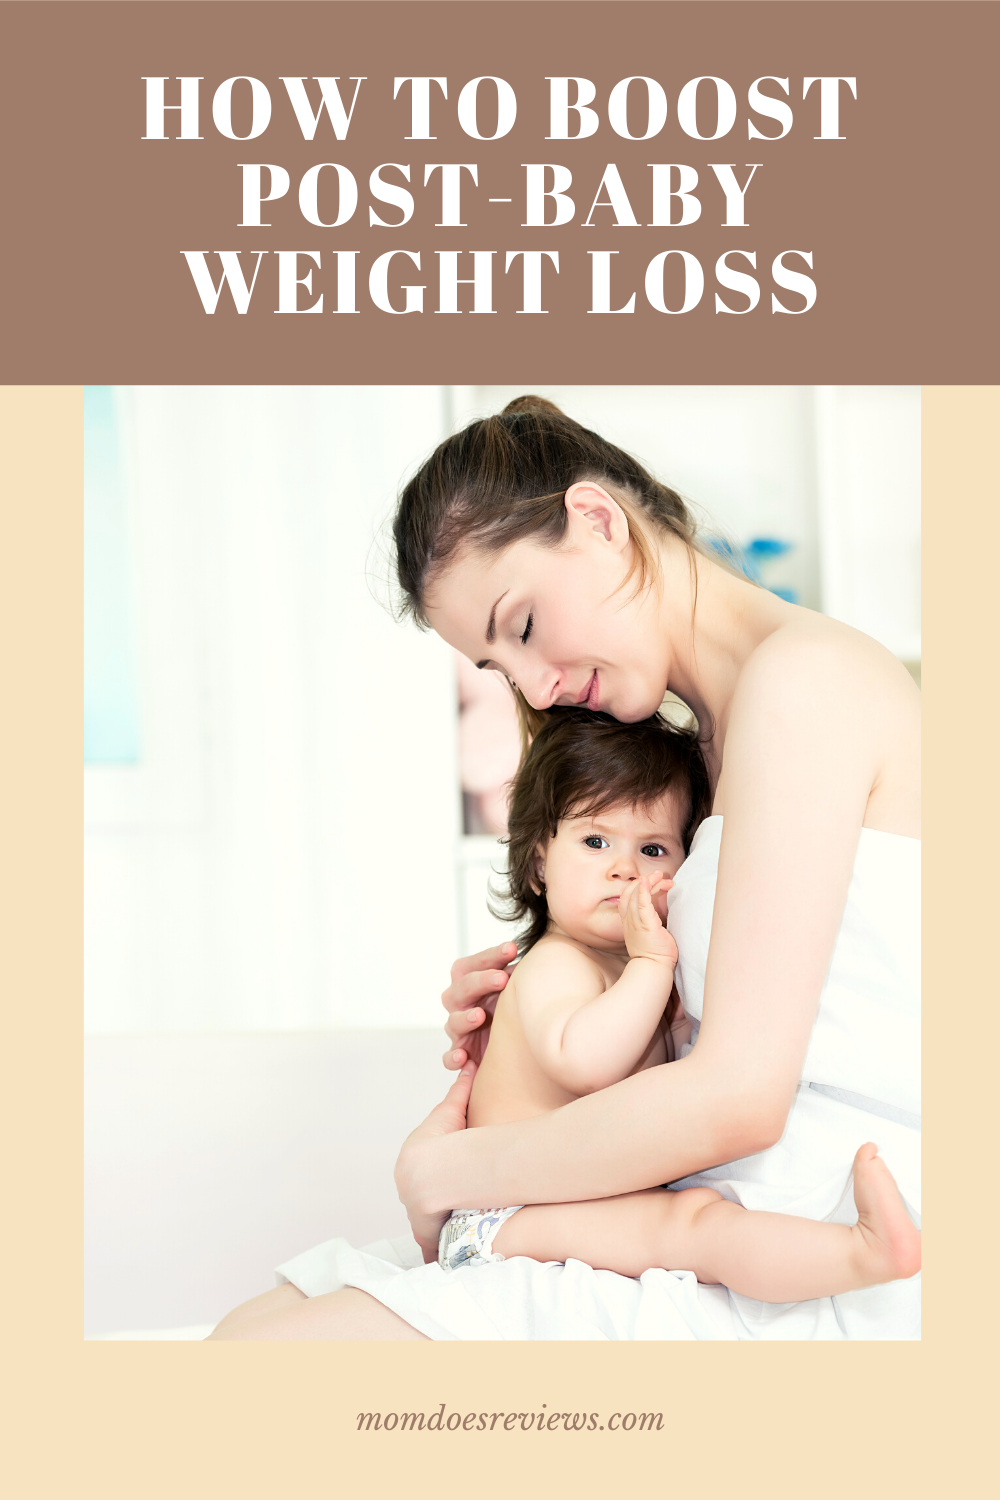 5 Ways To Boost Post-Baby Weight Loss